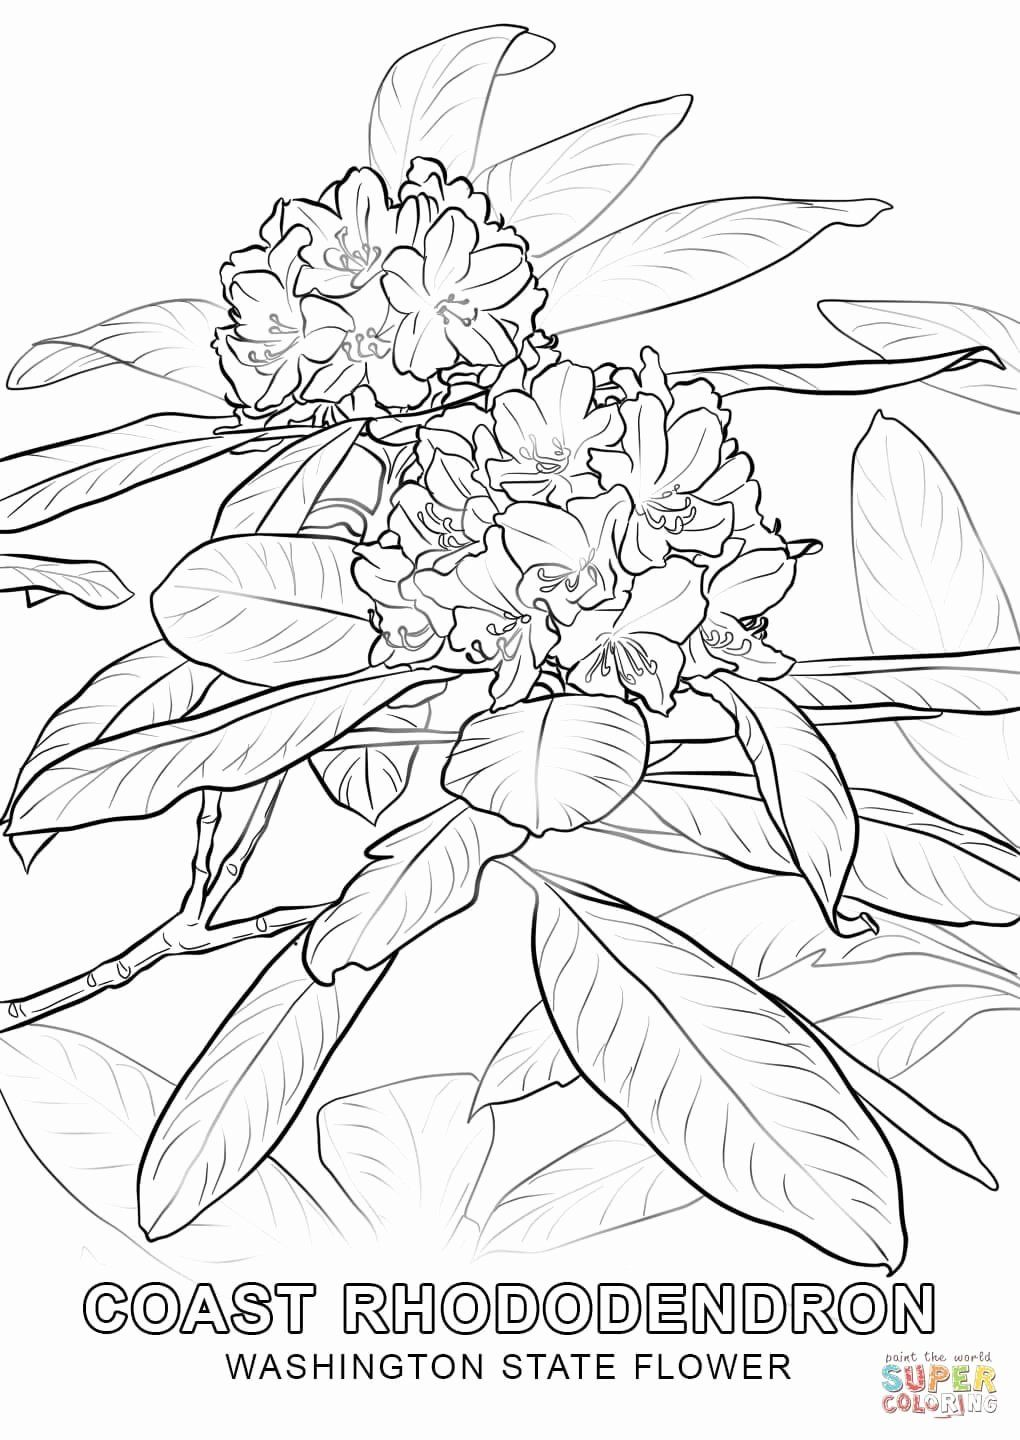 Washington State Flag Coloring Page Inspirational Washington State Flower Coloring Page Flag Coloring Pages Kentucky State Flower Flower Coloring Pages